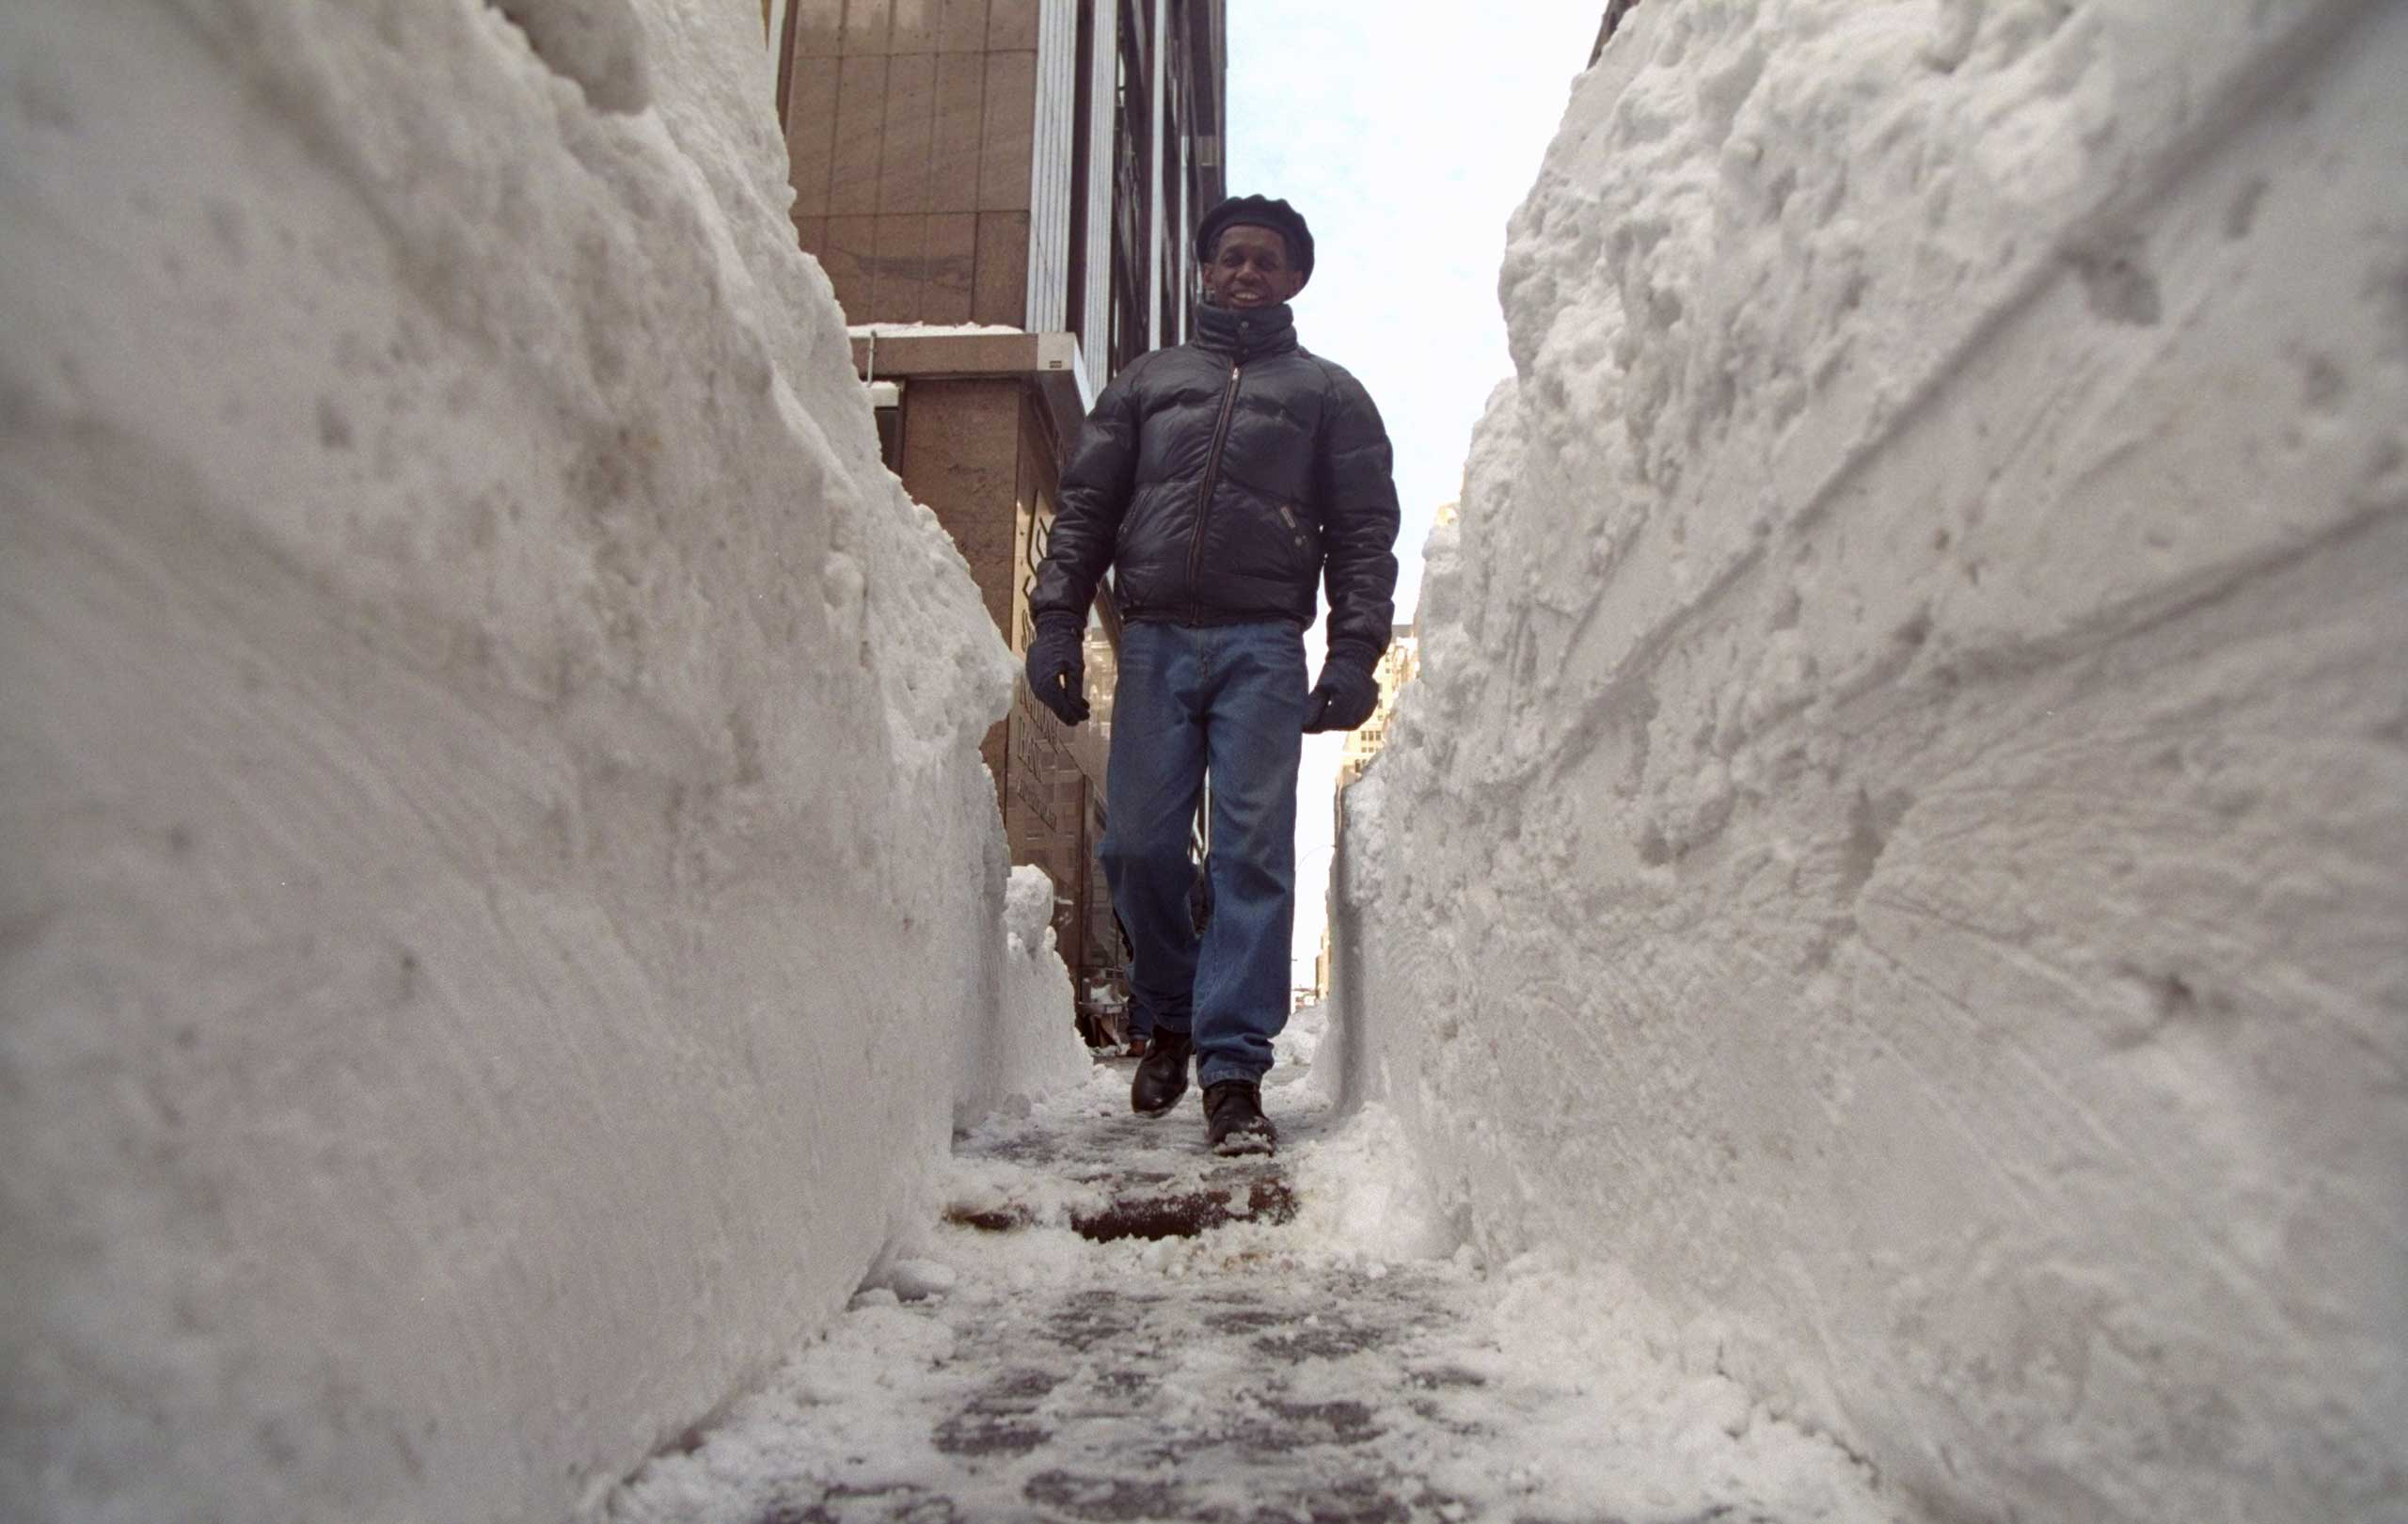 <b>The Blizzard of 1996 (Jan. 6-9, 1996)</b> The mid-Atlantic and Northeast regions received 2-3 feet of snow, with Philadelphia accumulating 30.7 inches - its highest snowfall record to date.